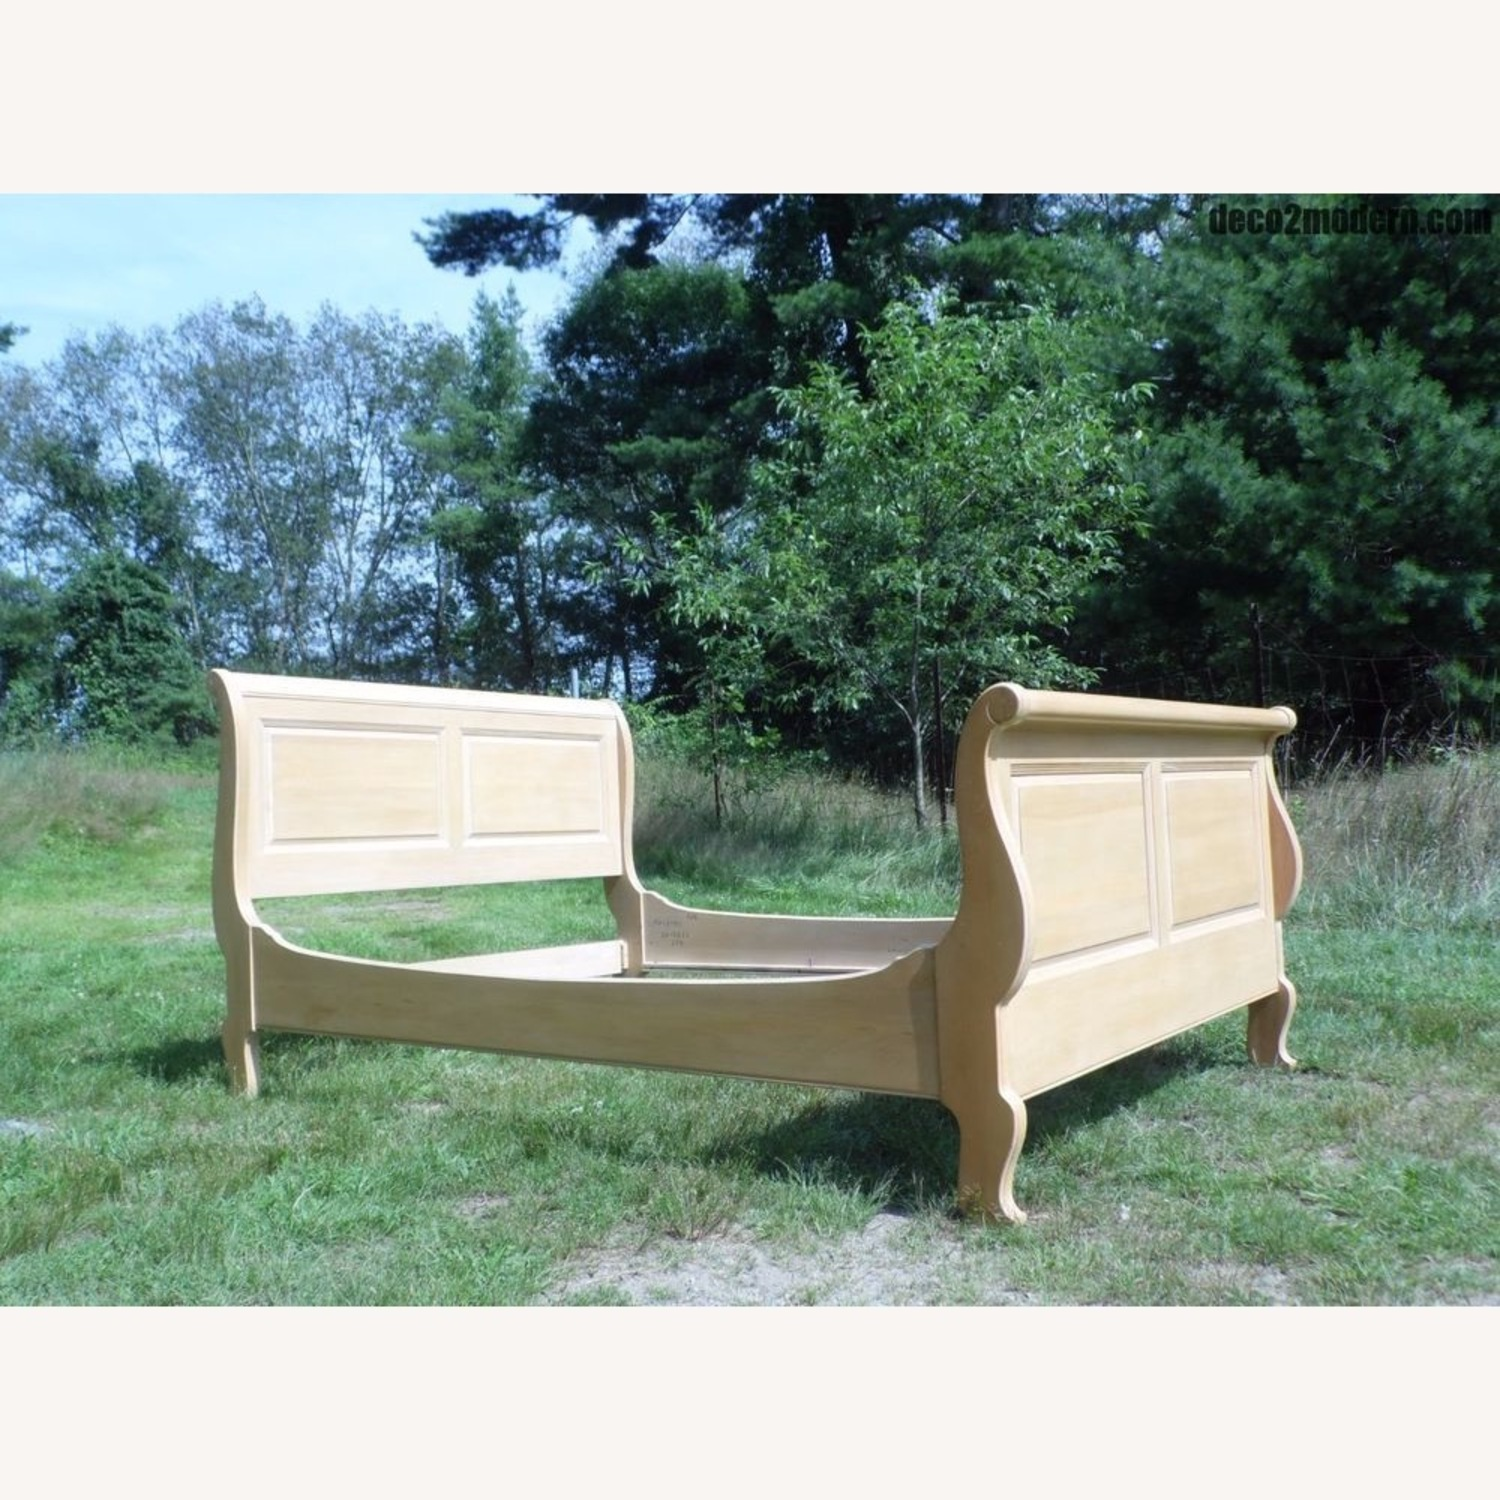 Ethan Allen Queen Sized Sled Bed Frame - image-1